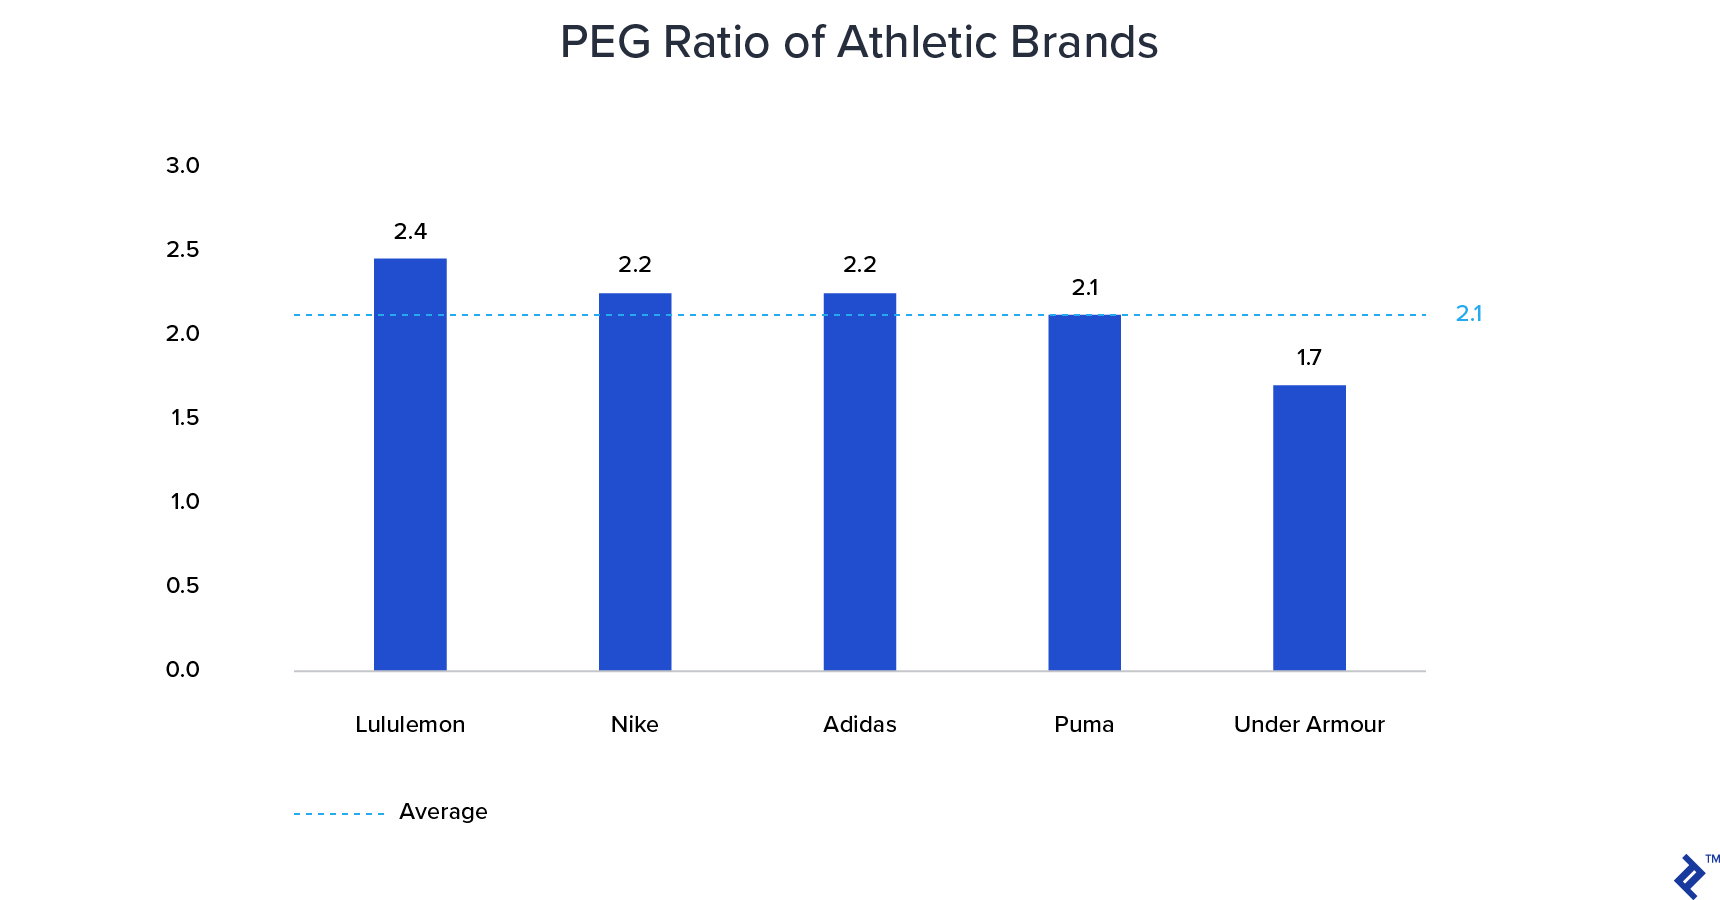 PEG Ratio of athletic brands